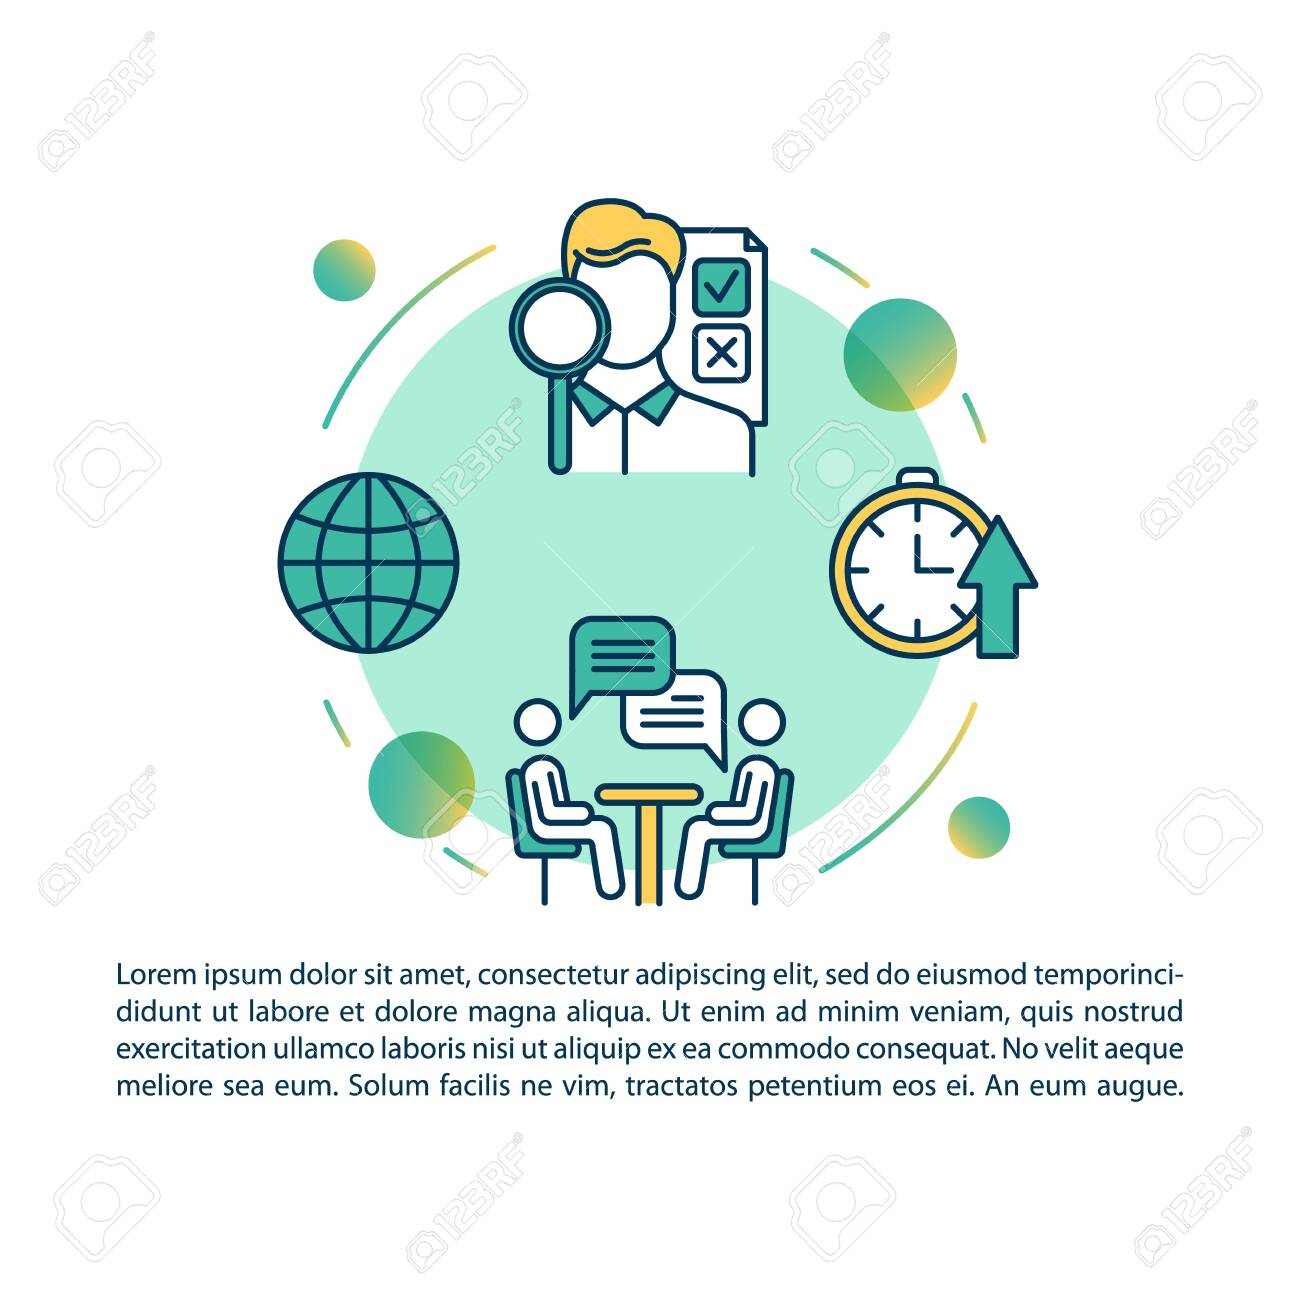 Local production article page vector template. Small business benefits. Quality control. Brochure, magazine, booklet design element with linear icons. Print design. Concept illustrations with text - 134836877